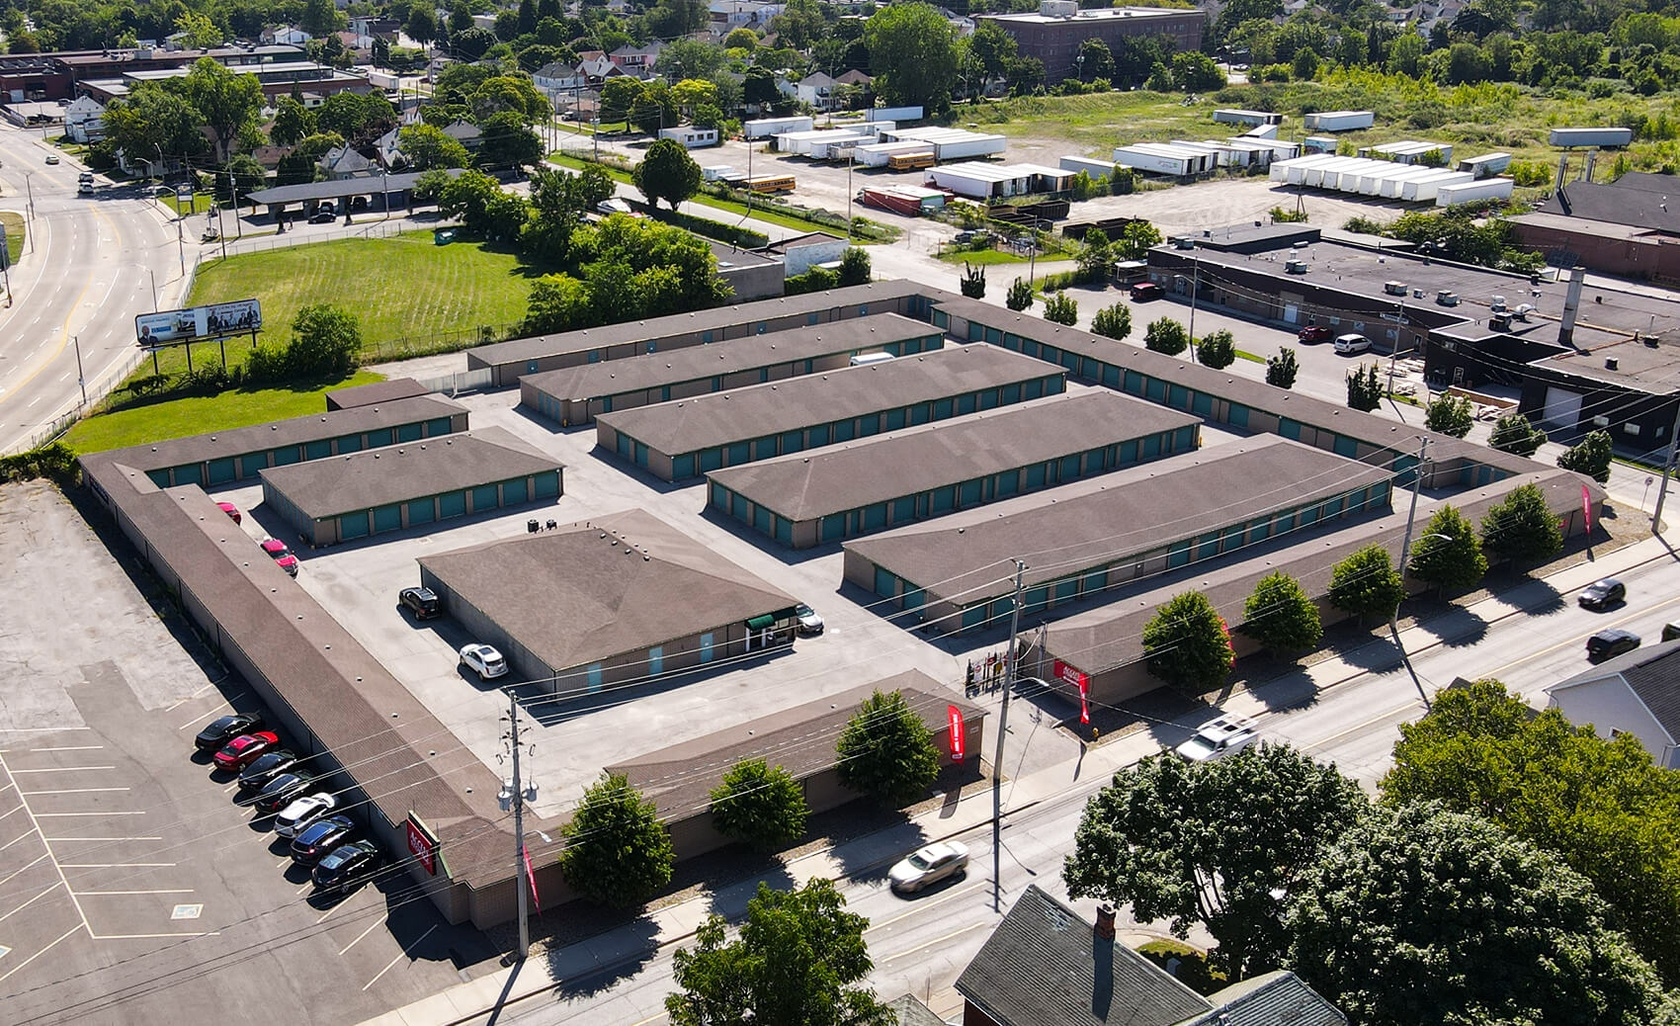 Rent Windsor Walkerville storage units at 840 Walker Road. We offer a wide-range of affordable self storage units and your first 4 weeks are free!